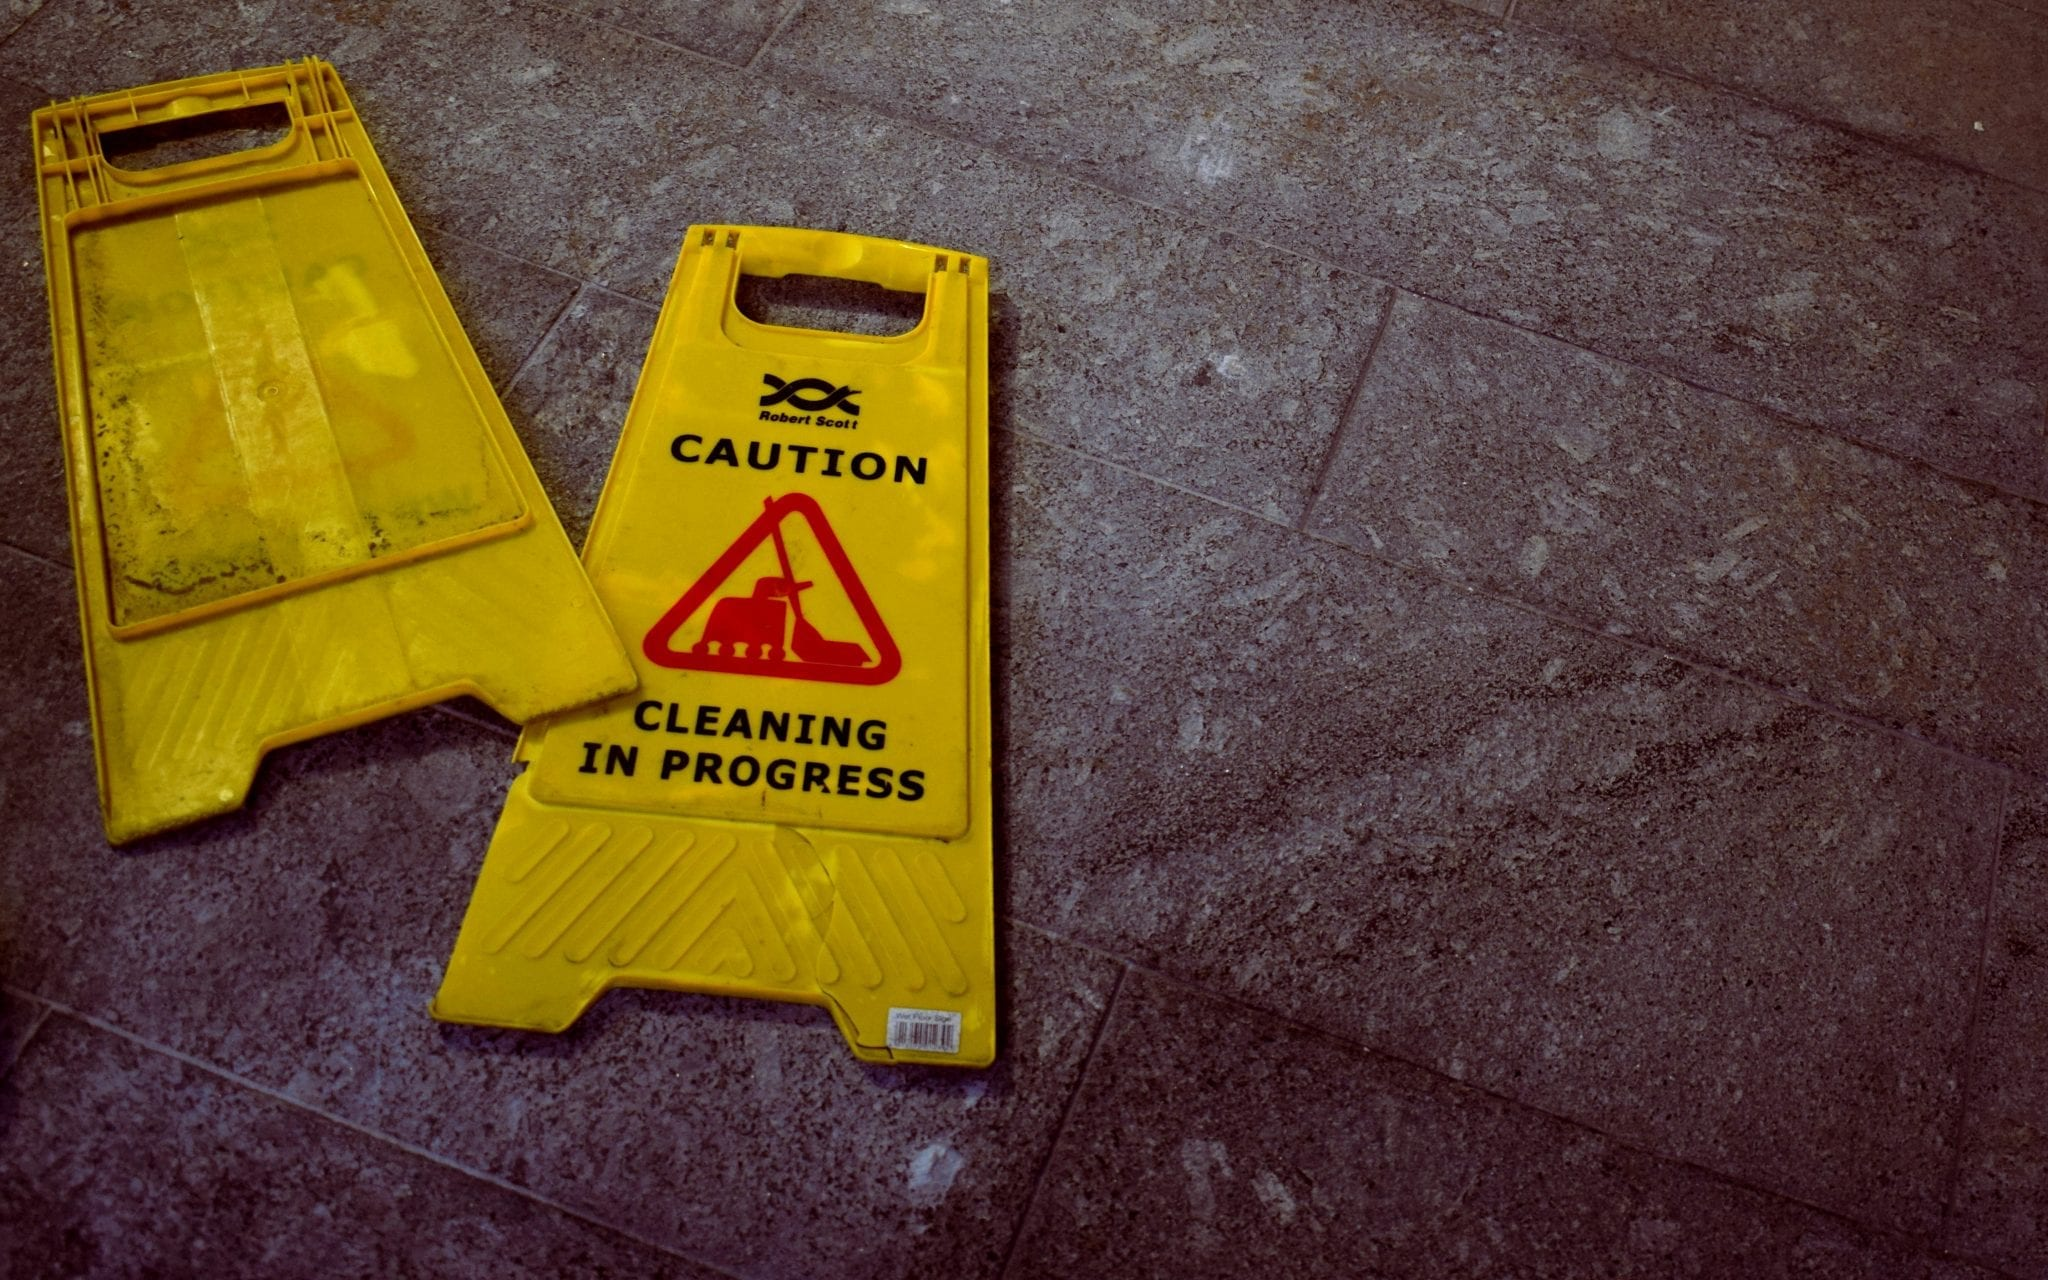 """Caution: Cleaning in Progress"" signs lying on tile floor; image by Oliver Hale, via Unsplash.com."